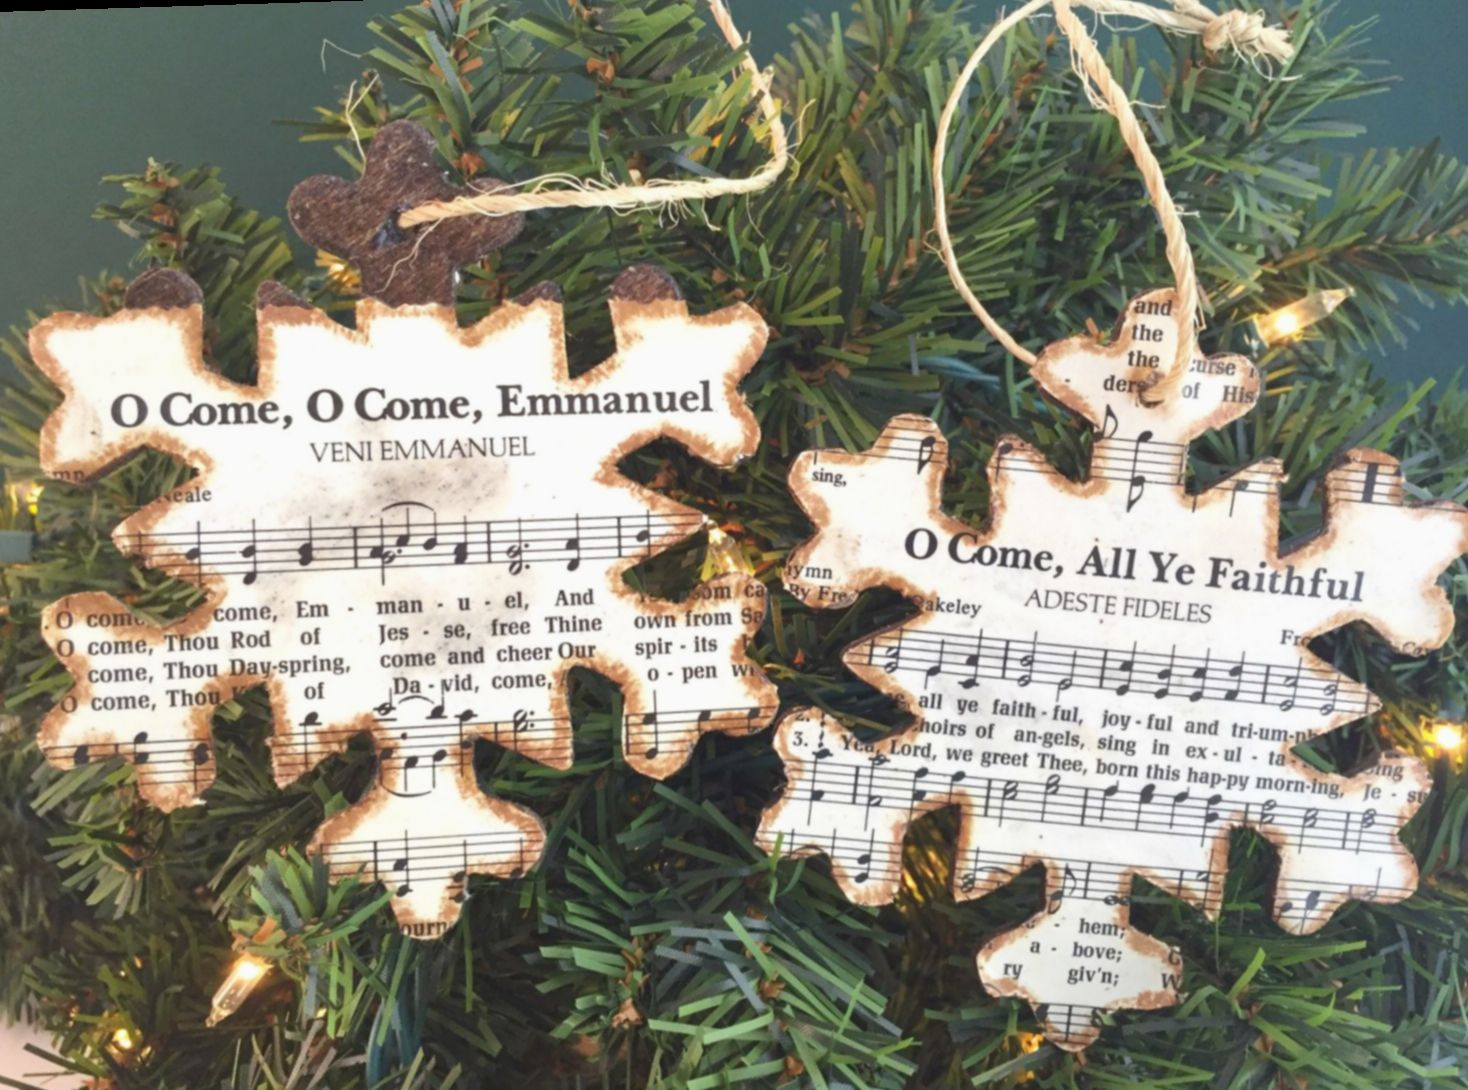 Wooden Ornaments Snowflakes Christmas Ornaments Snowflakes Wooden Ornament Christm Christmas Ornaments Diy Christmas Ornaments Rustic Music Christmas Ornaments